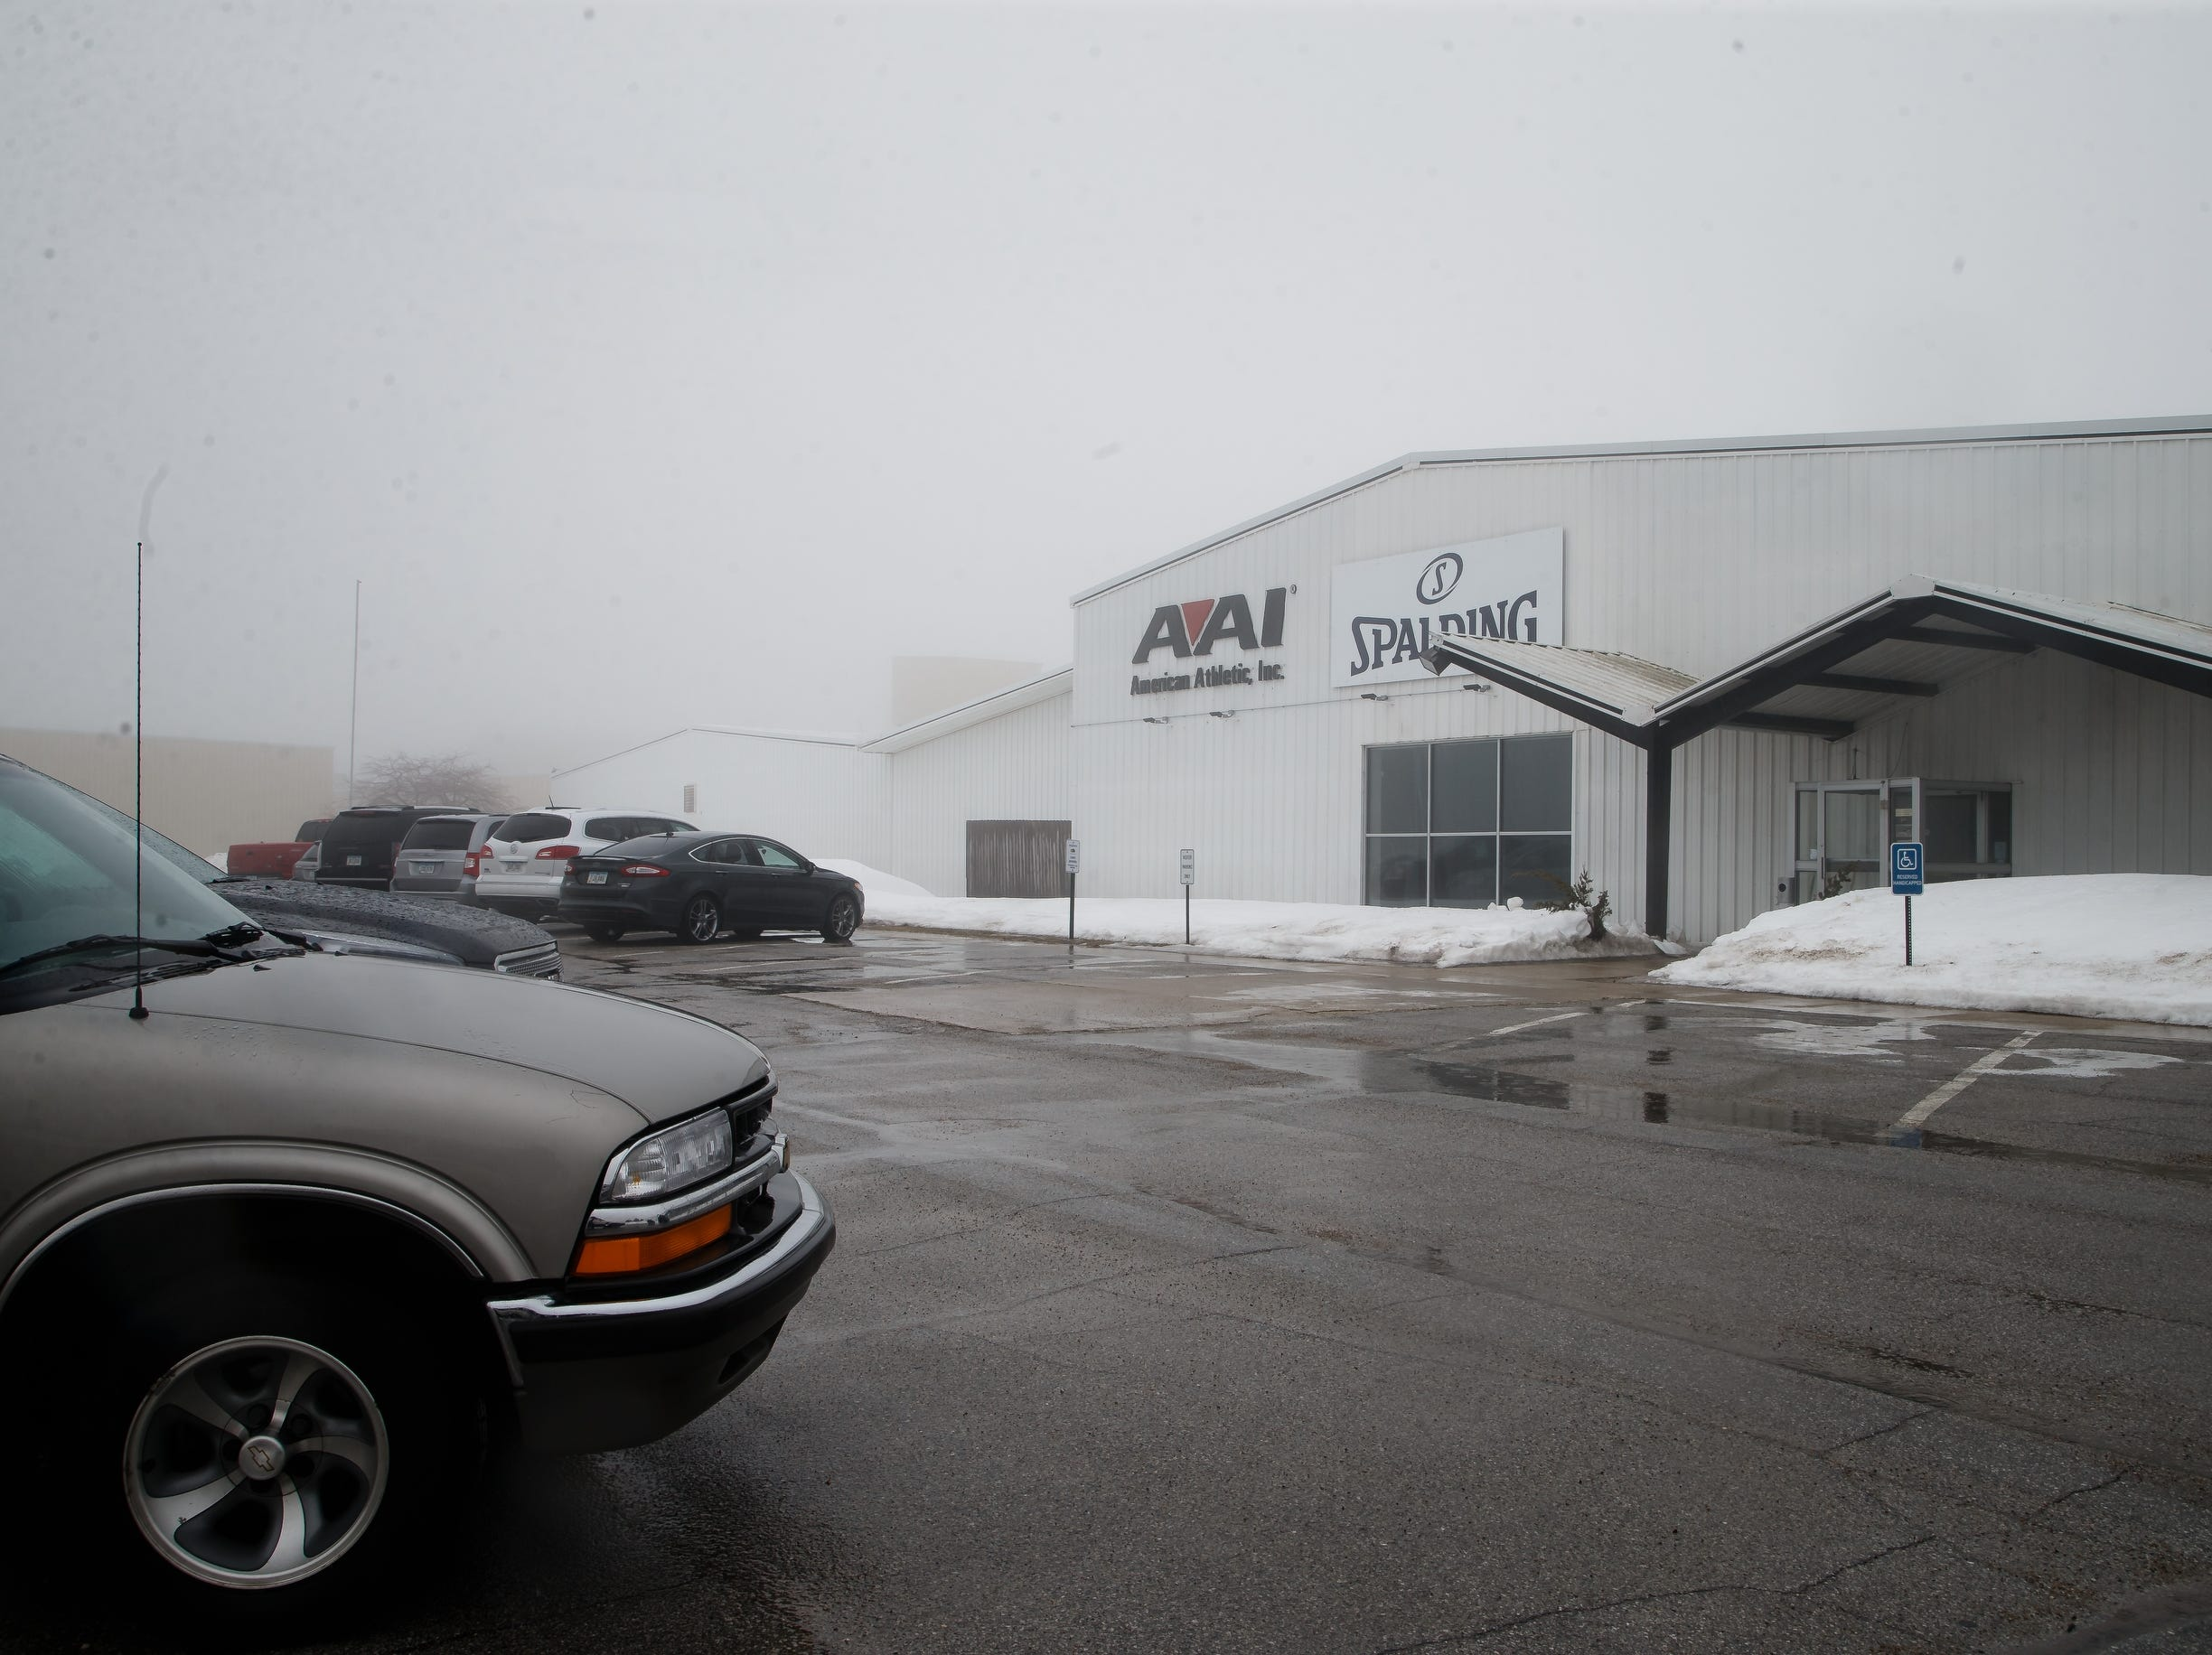 The AAI facility is seen through the fog on Wednesday, March 13, 2019 in Jefferson. AAI is the official supplier of basketball back stops for NBA, NCAA, WNBA and the NBA G-League. They make all their products, as well as a full line of gymnastics and tumbling equipment out of this factory in Jefferson where they were founded.